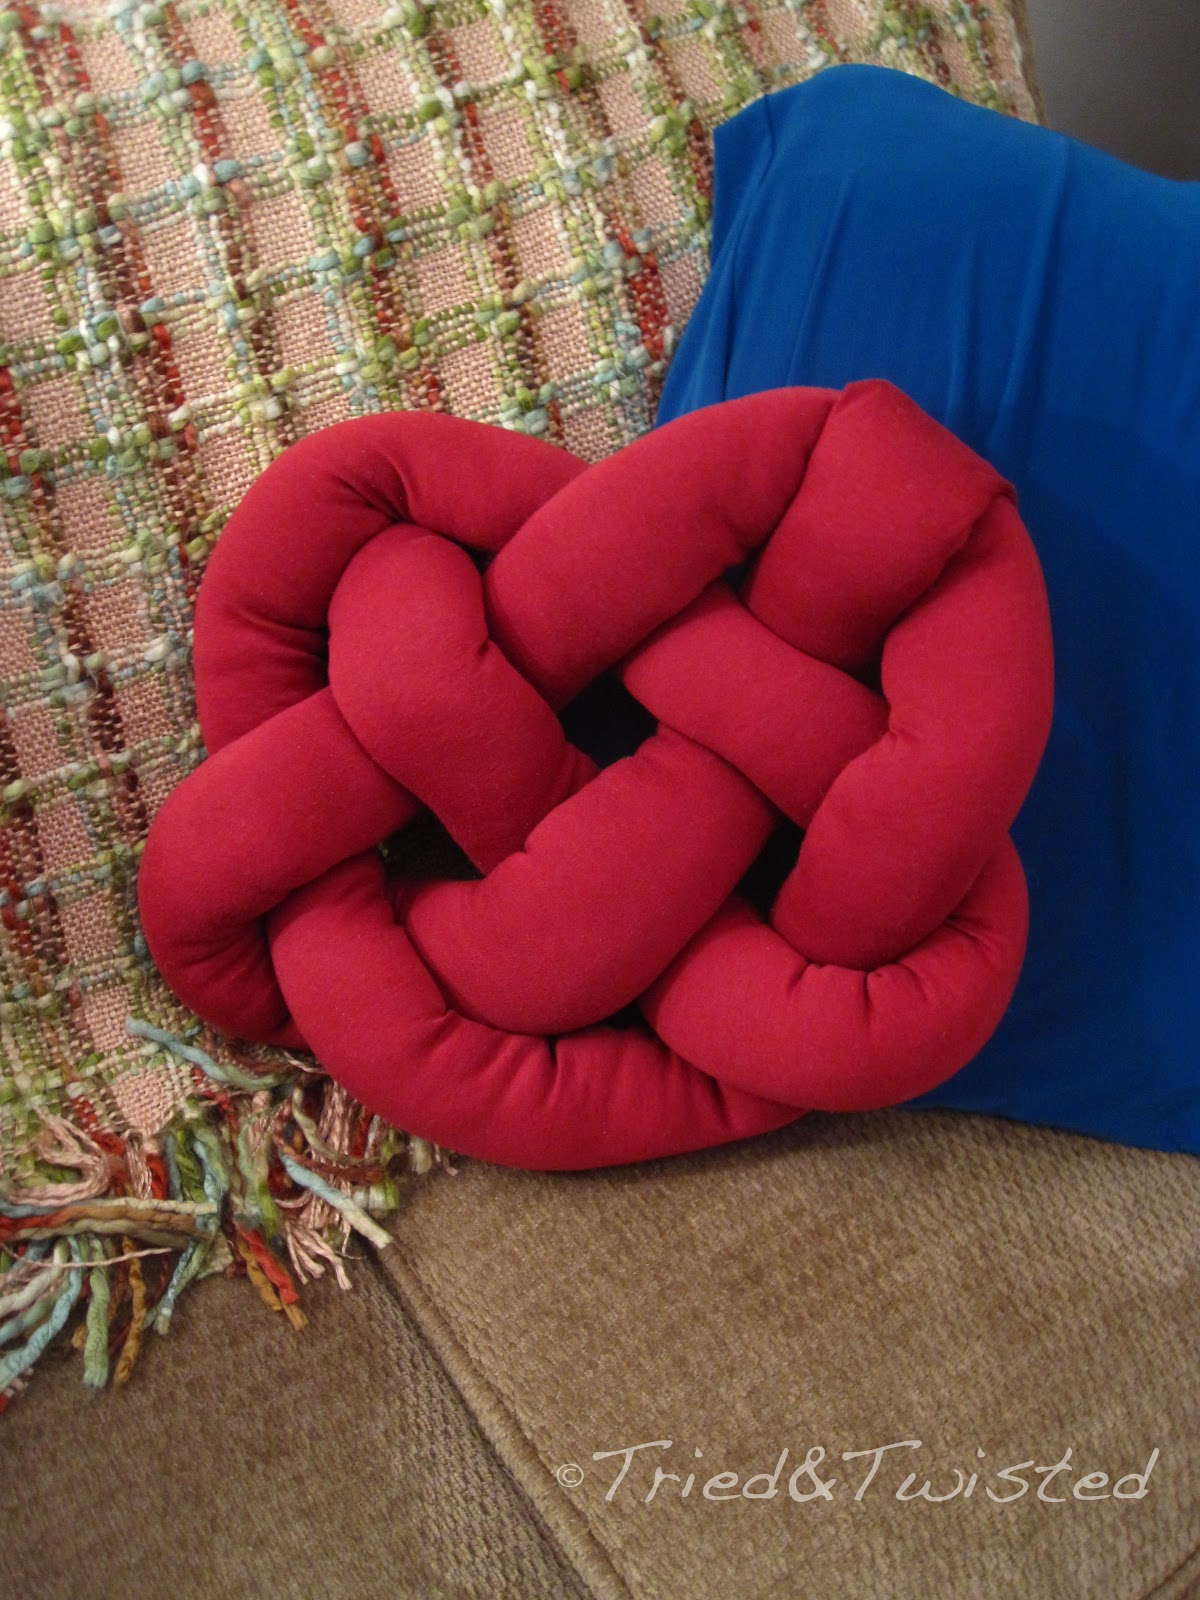 Diy Squishy Knot Pillow : Tried and Twisted: DIY Celtic Knot Heart Pillow